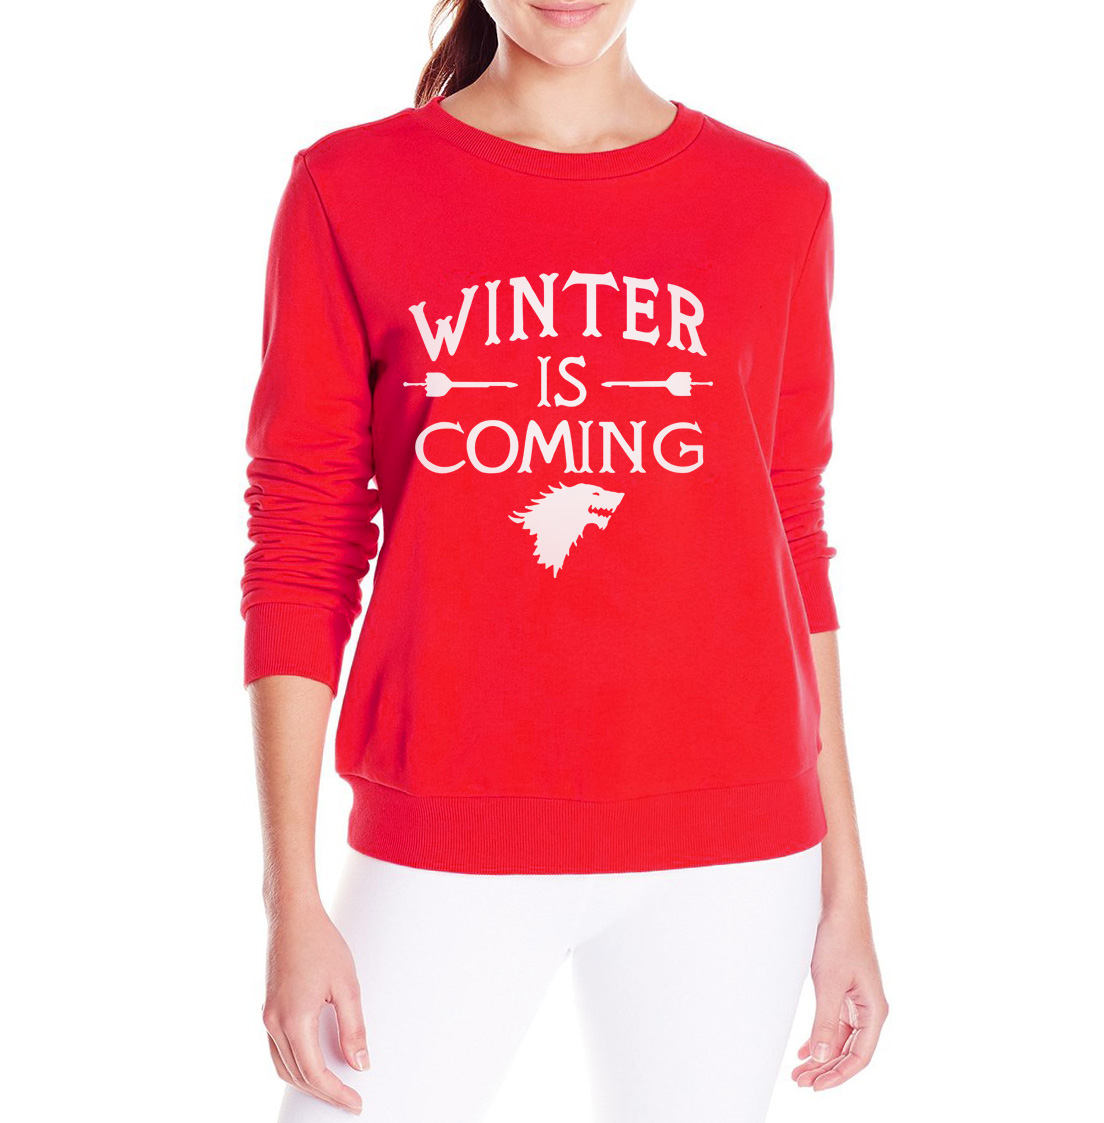 sweatshirt-winter-is-coming-woman3-asylum4nerd